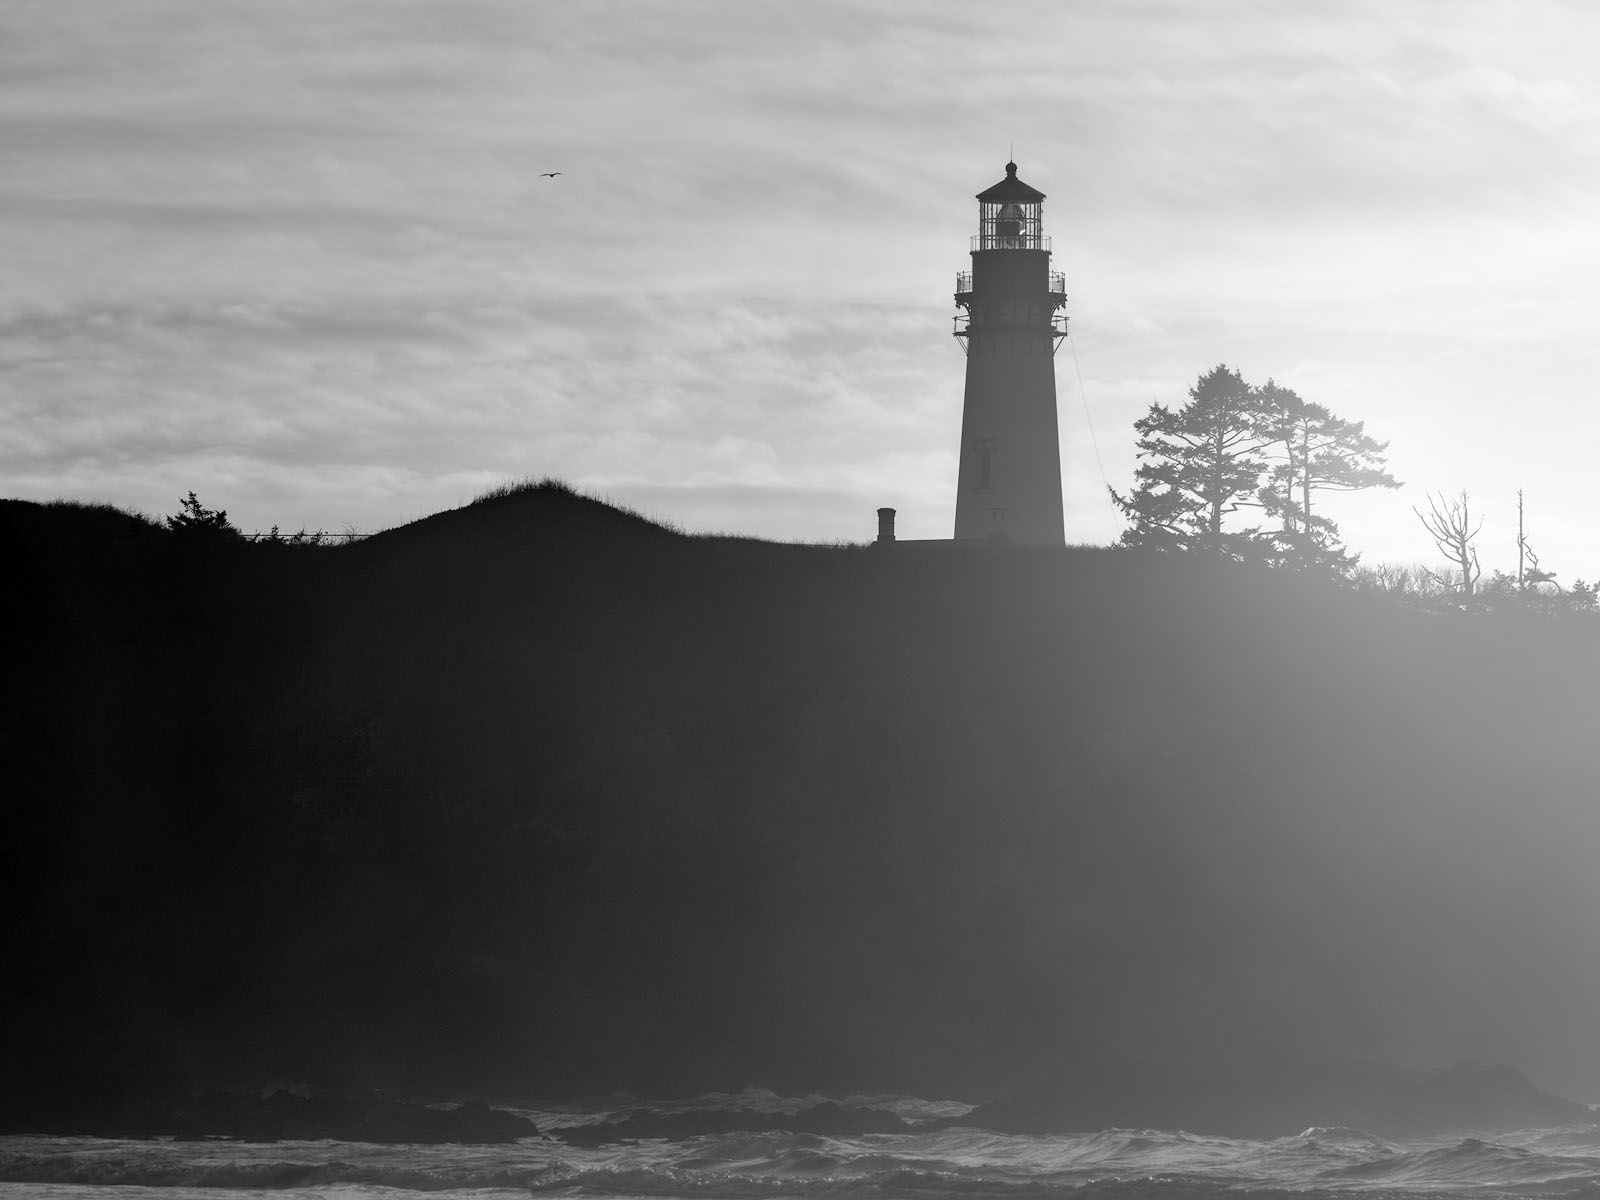 WORLD REGIONS & COUNTRIES, North America, United States of America, Oregon, IMAGE/COLOR/STYLE/FORMAT, BW/COLOR, color, environment, scenery, land, landscape, Starfish Cove, Yaquina Head Lighthouse, IP, photo